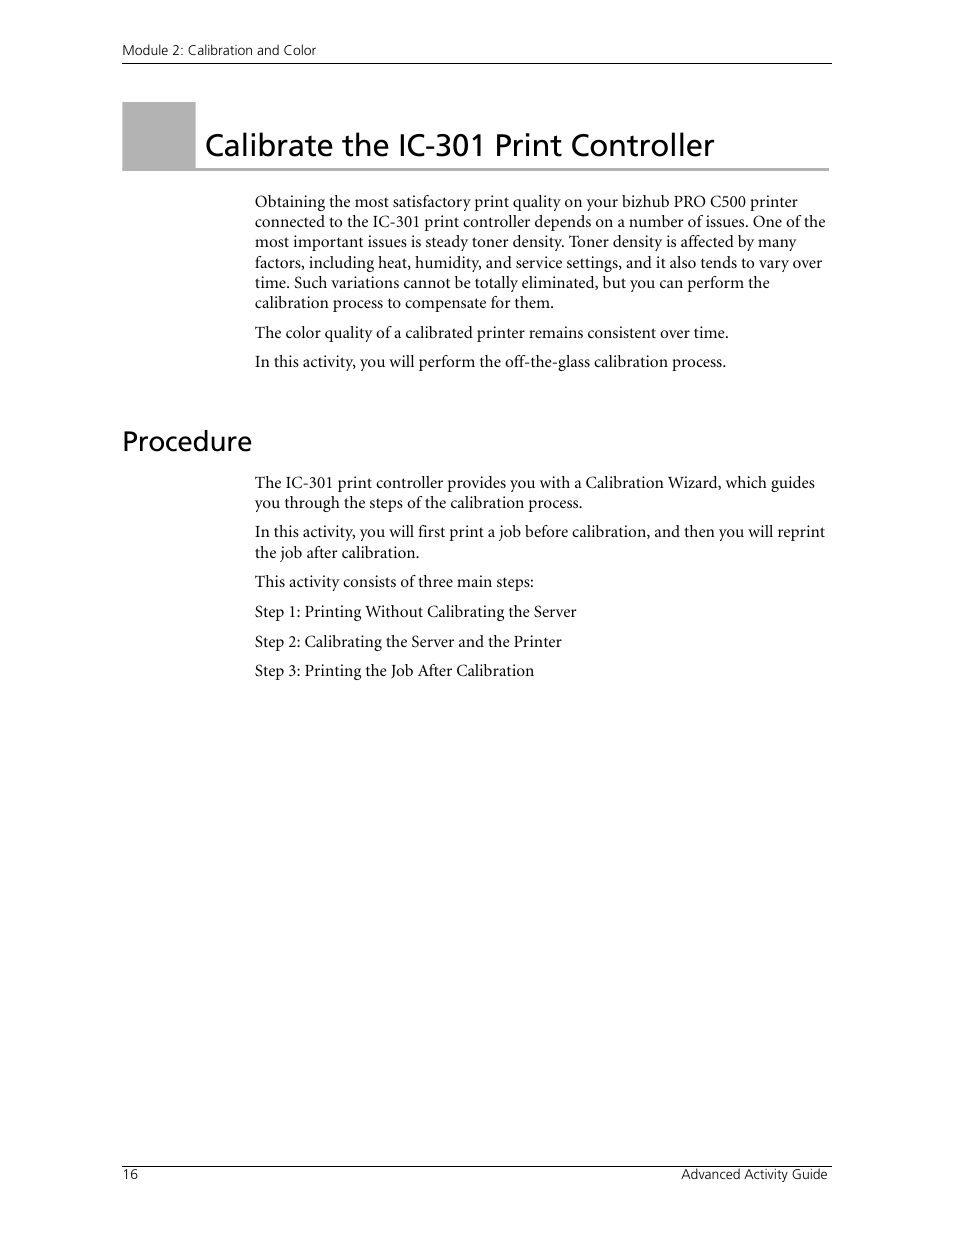 Calibrate the ic-301 print controller, Procedure, Activity 1: calibrate the  ic-301 print controller | Konica Minolta bizhub PRO C500 User Manual | Page  22 / ...